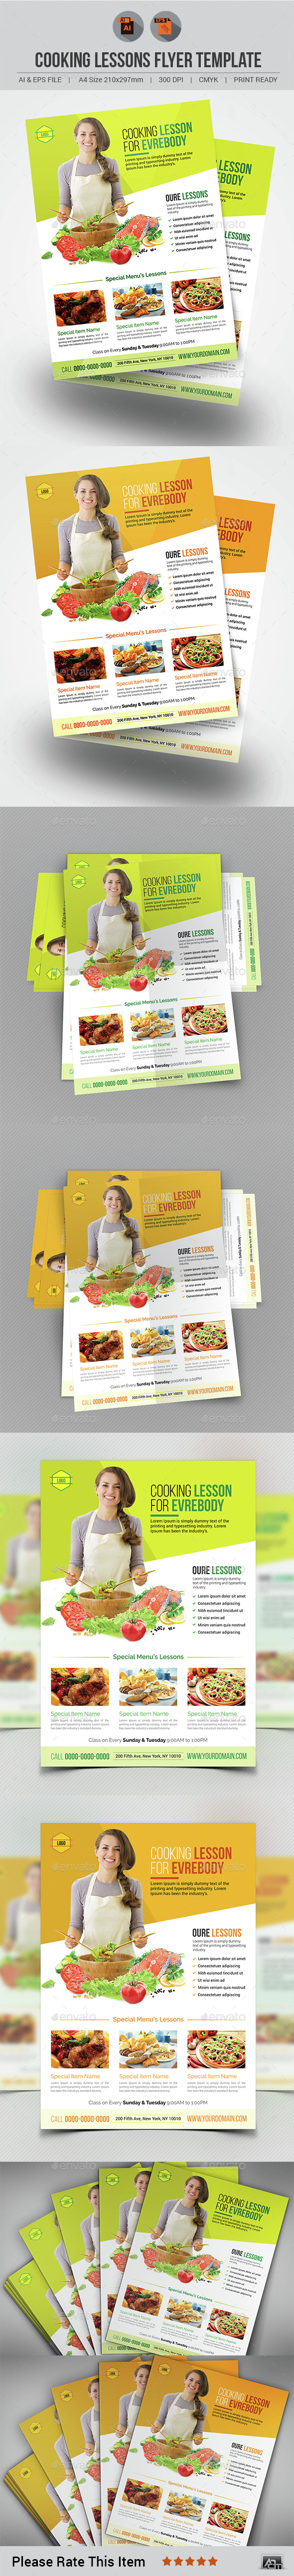 Cooking Lessons Flyer Template - Flyers Print Templates